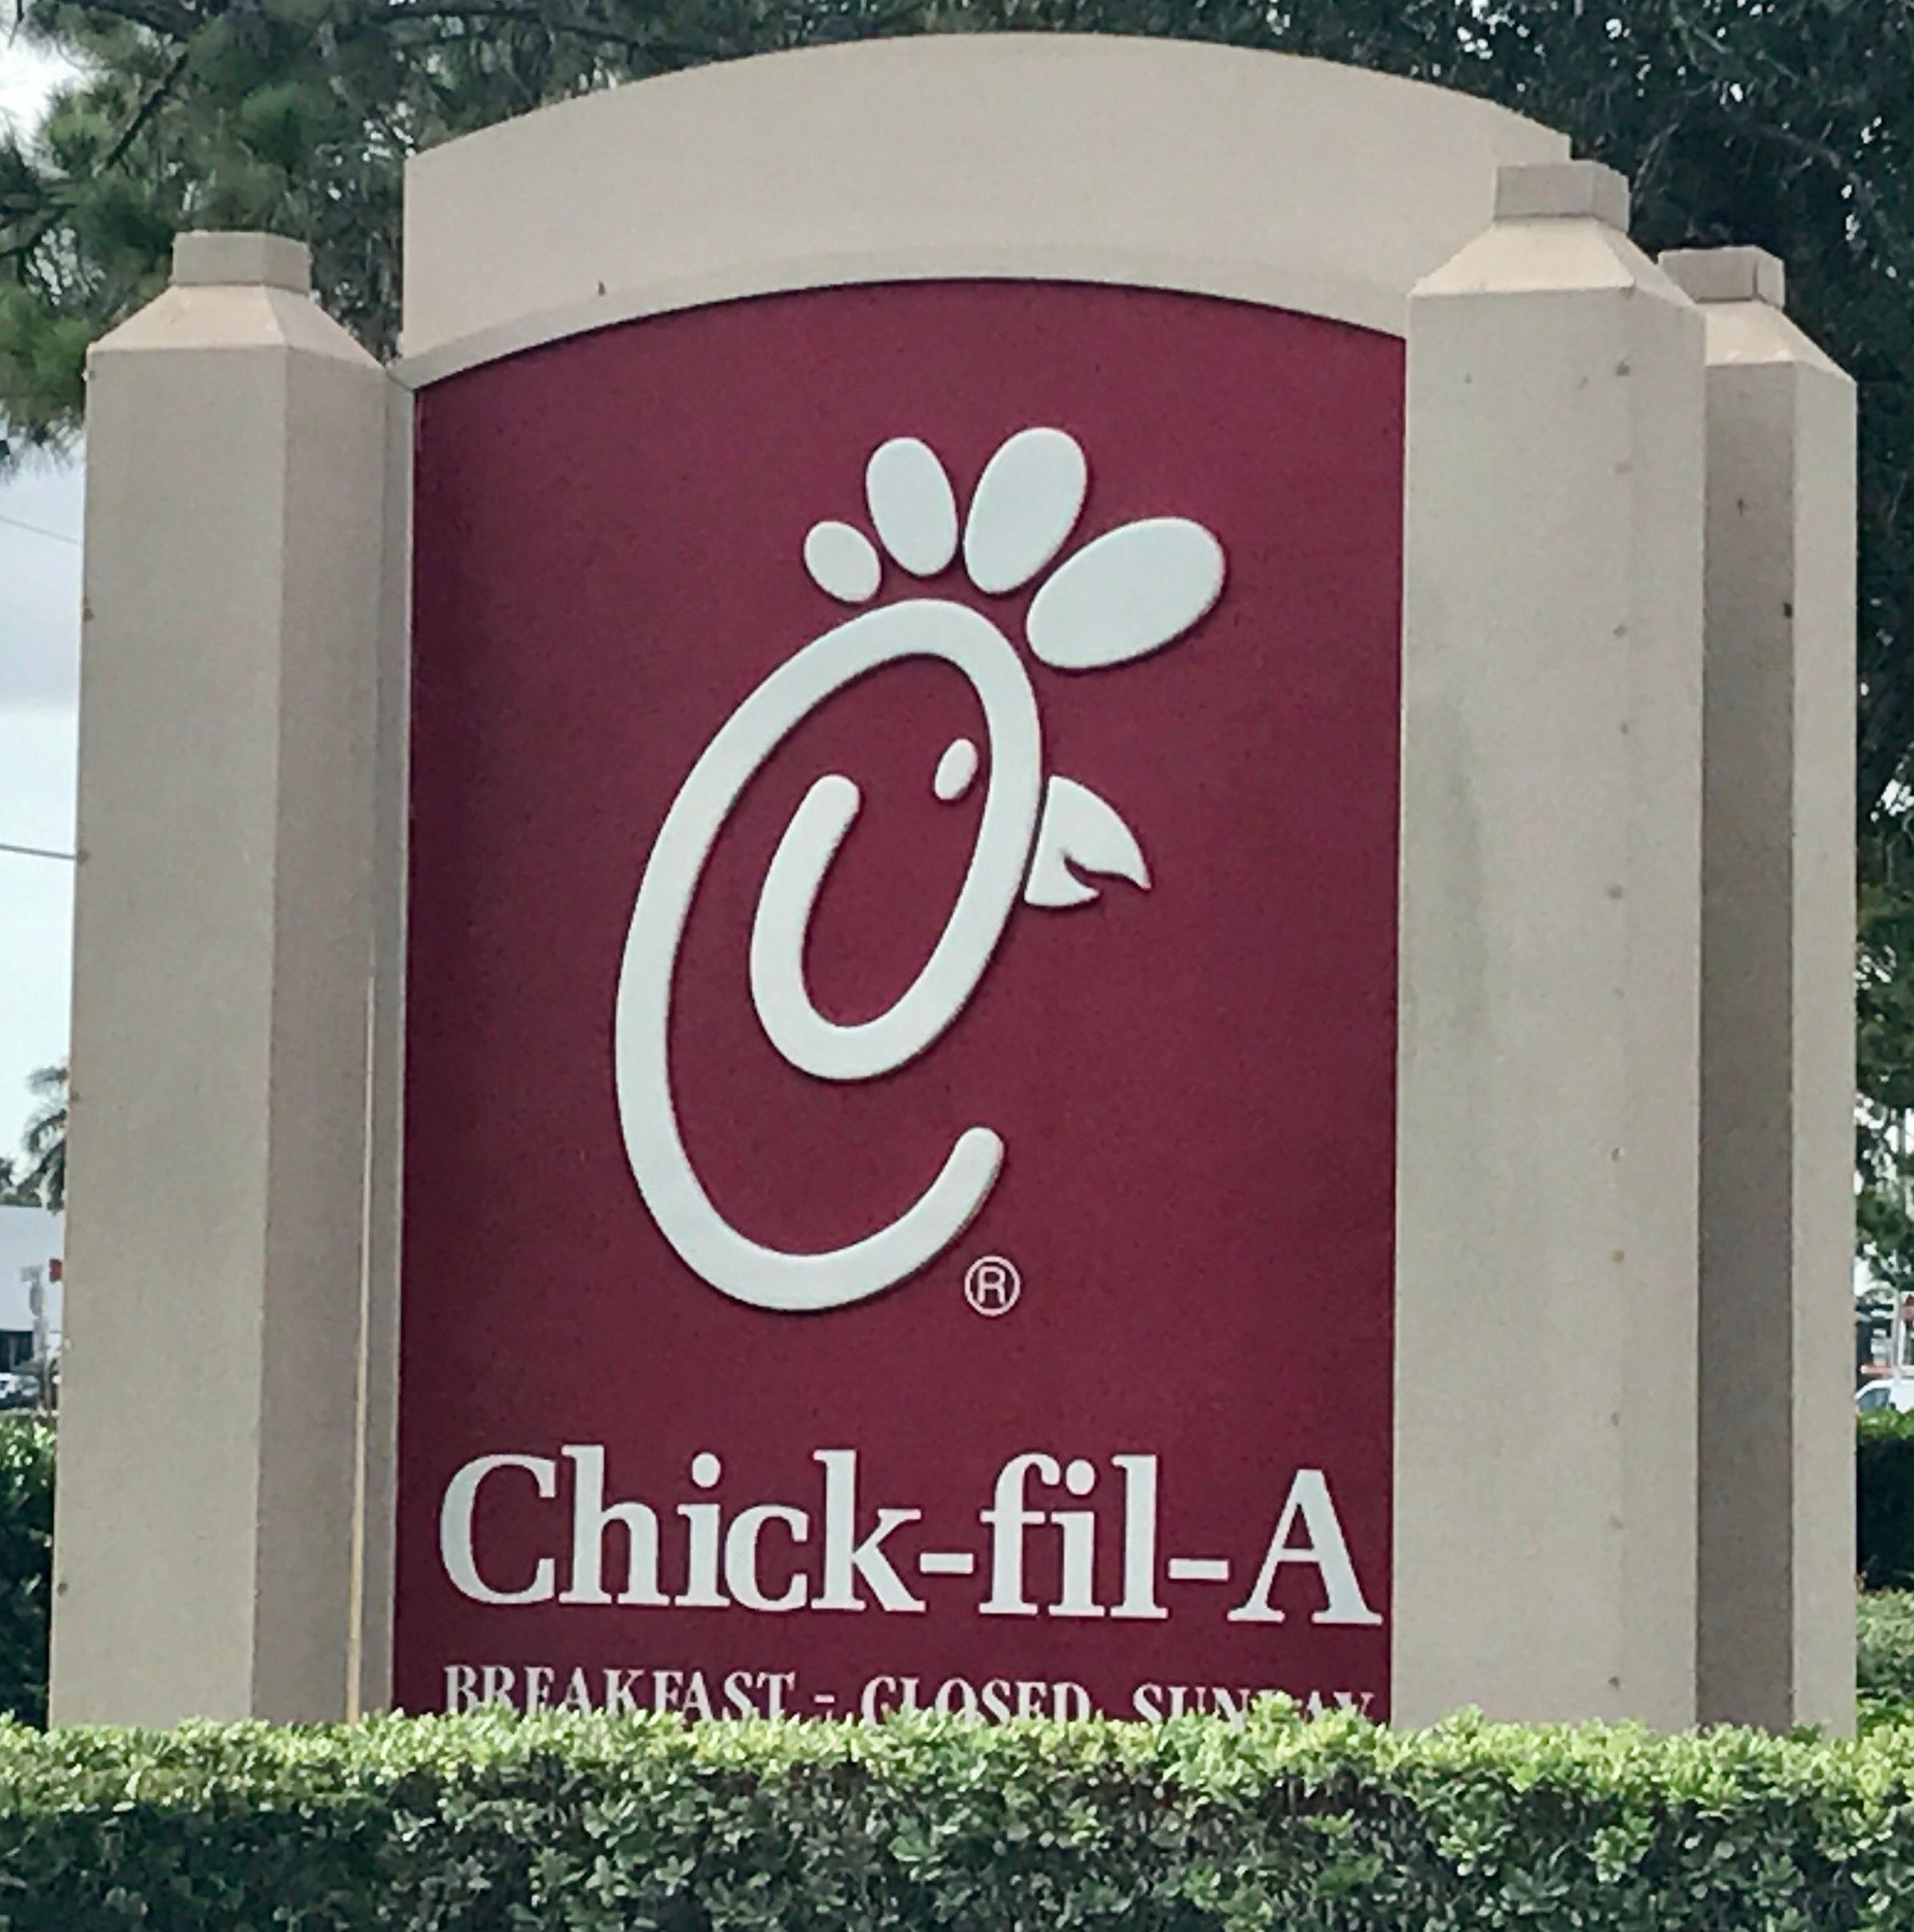 Viera may soon have its own Chick-fil-A.